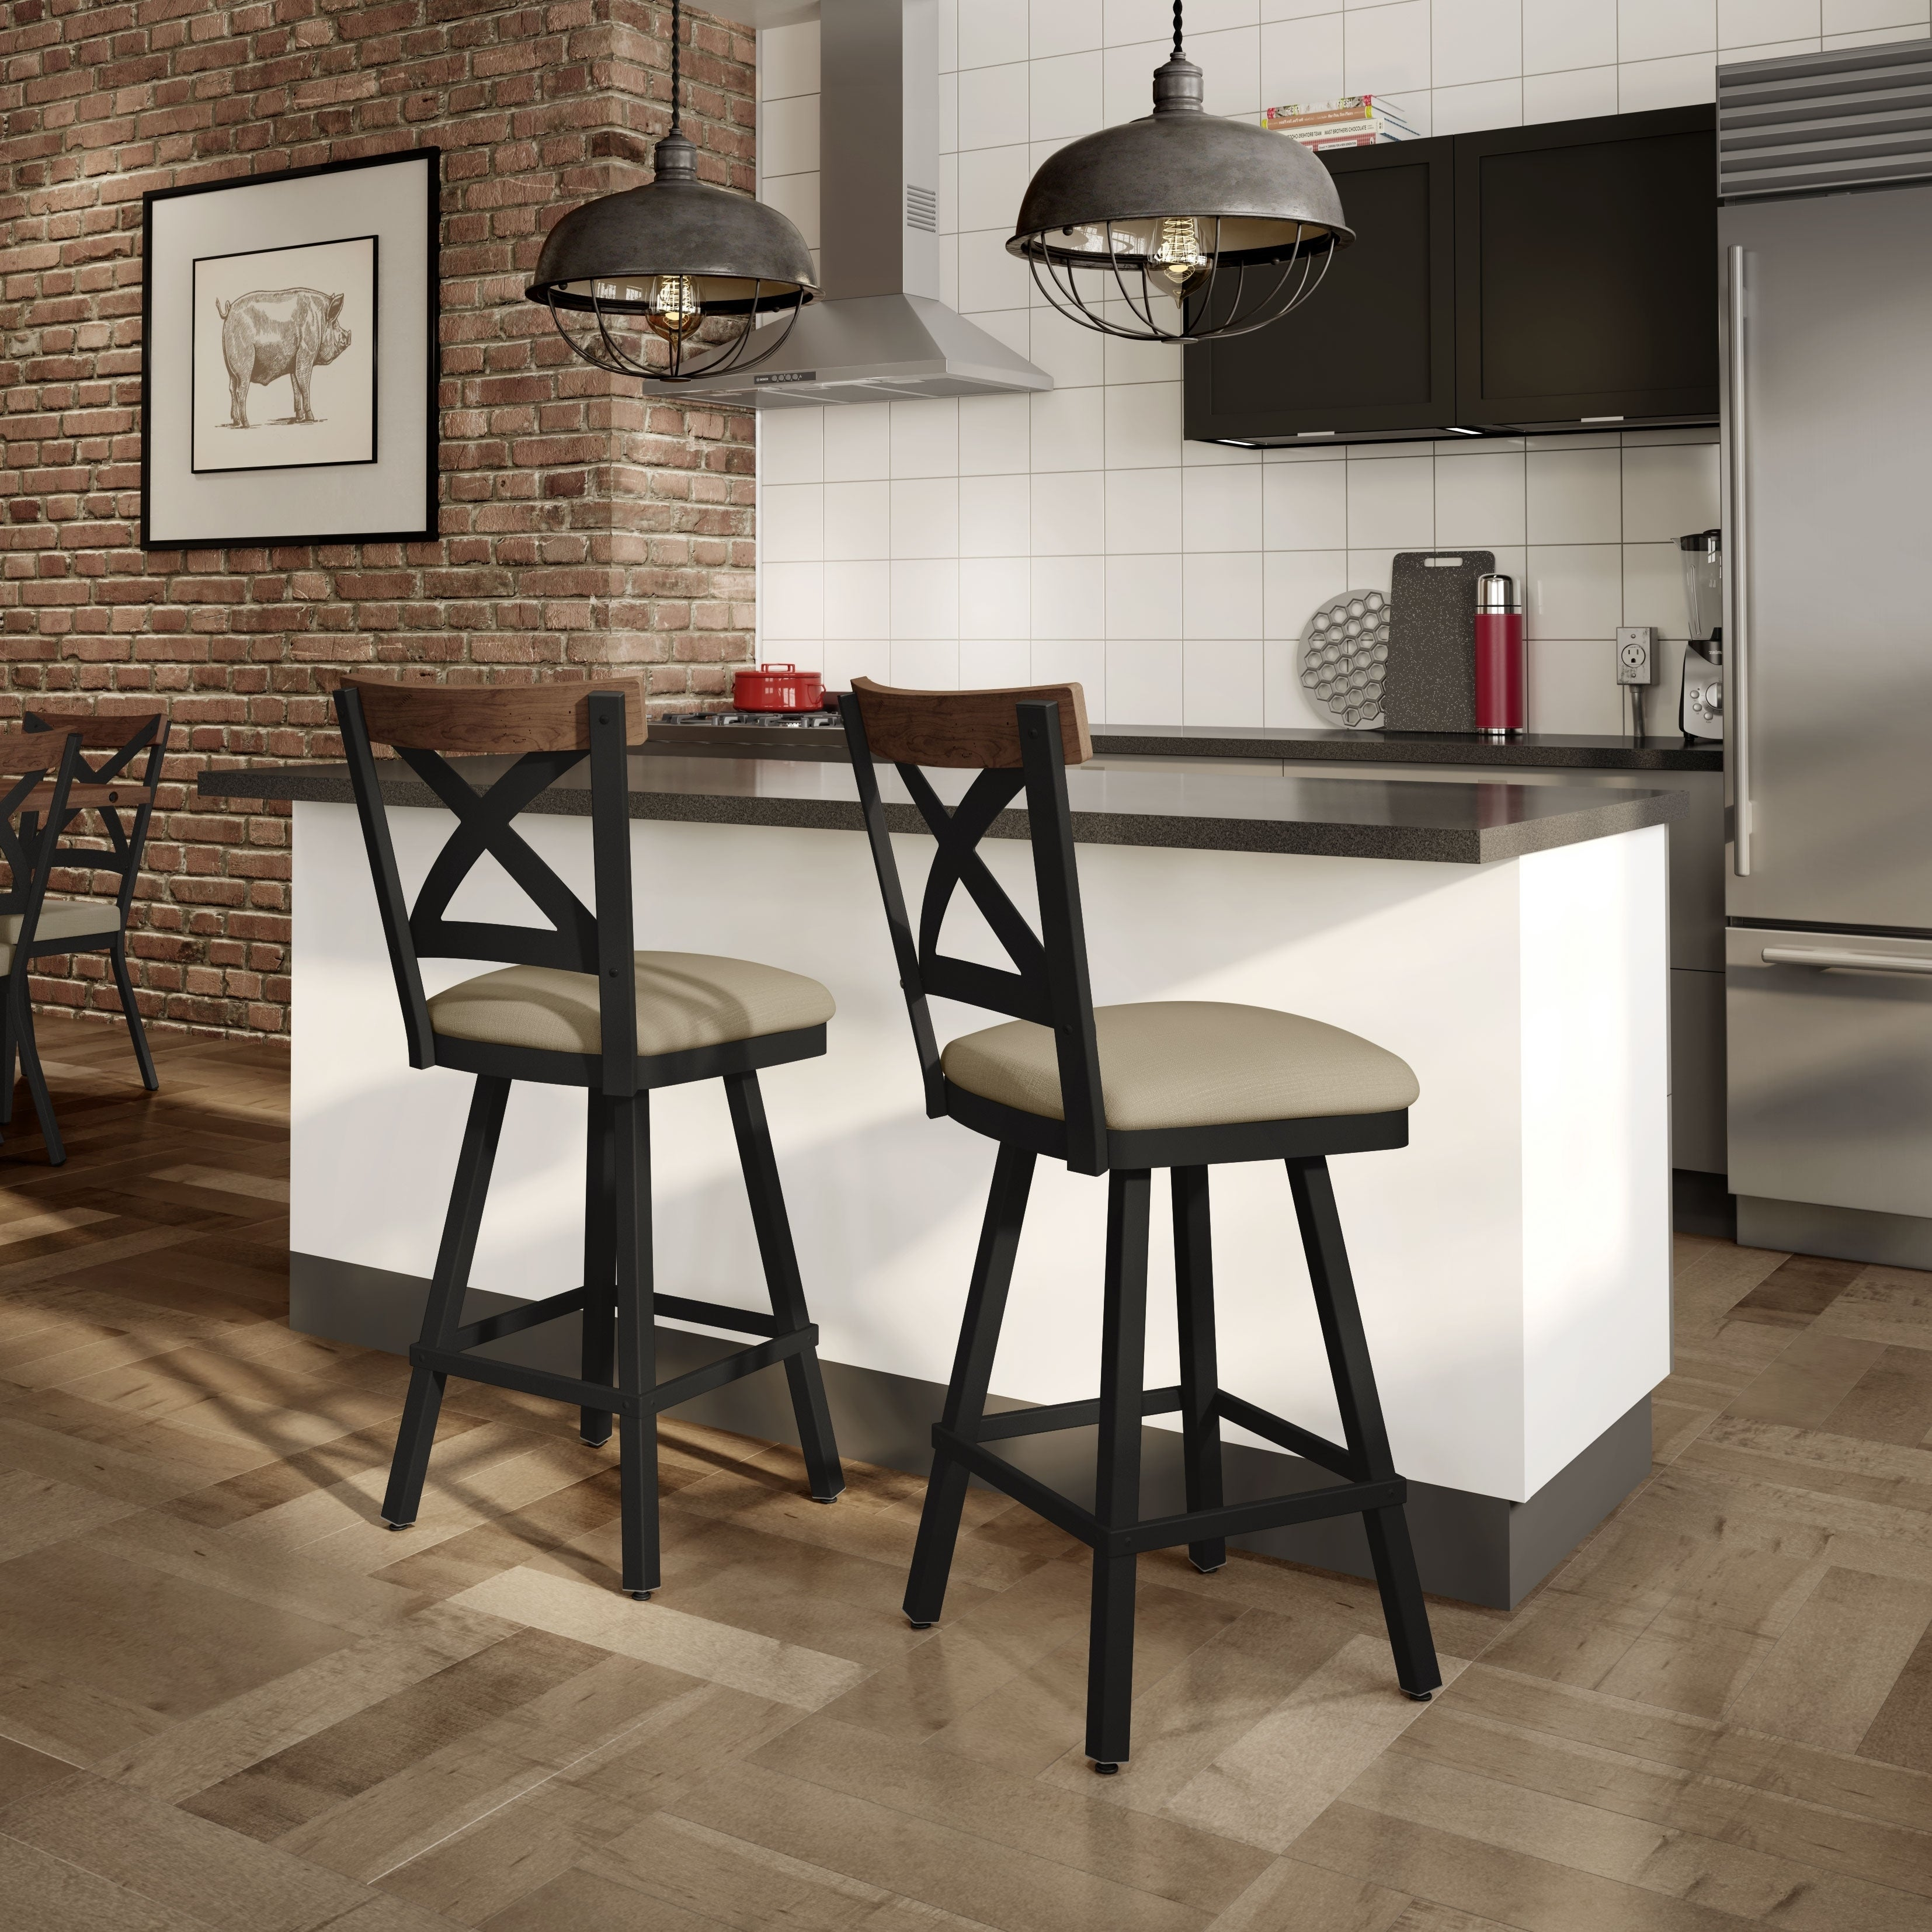 Fine Carbon Loft Prescoft Swivel Metal Stool With Wooden Accent Caraccident5 Cool Chair Designs And Ideas Caraccident5Info